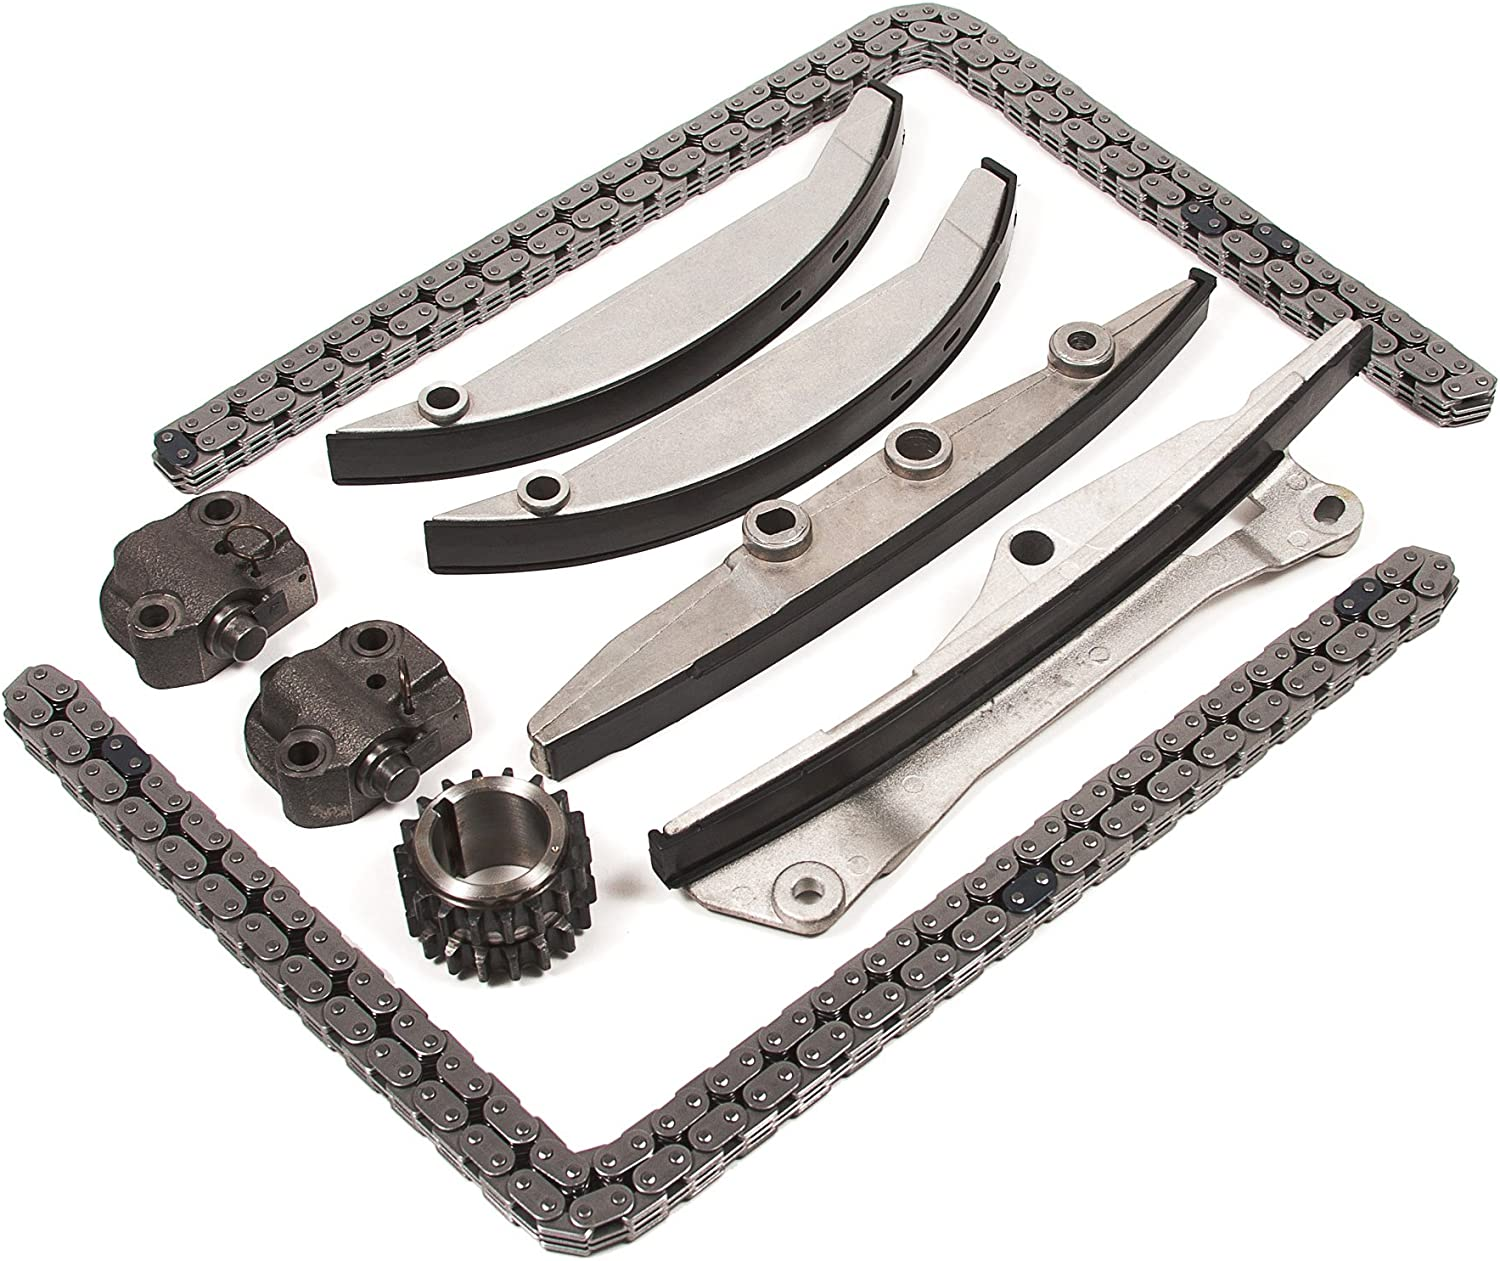 Diamond Power Timing Chain Kit works with Ford Contour Taurus Lincoln LS Mazda MPV Mercury Cougar Mystique Sable 2.5L 3.0L DOHC Duratec